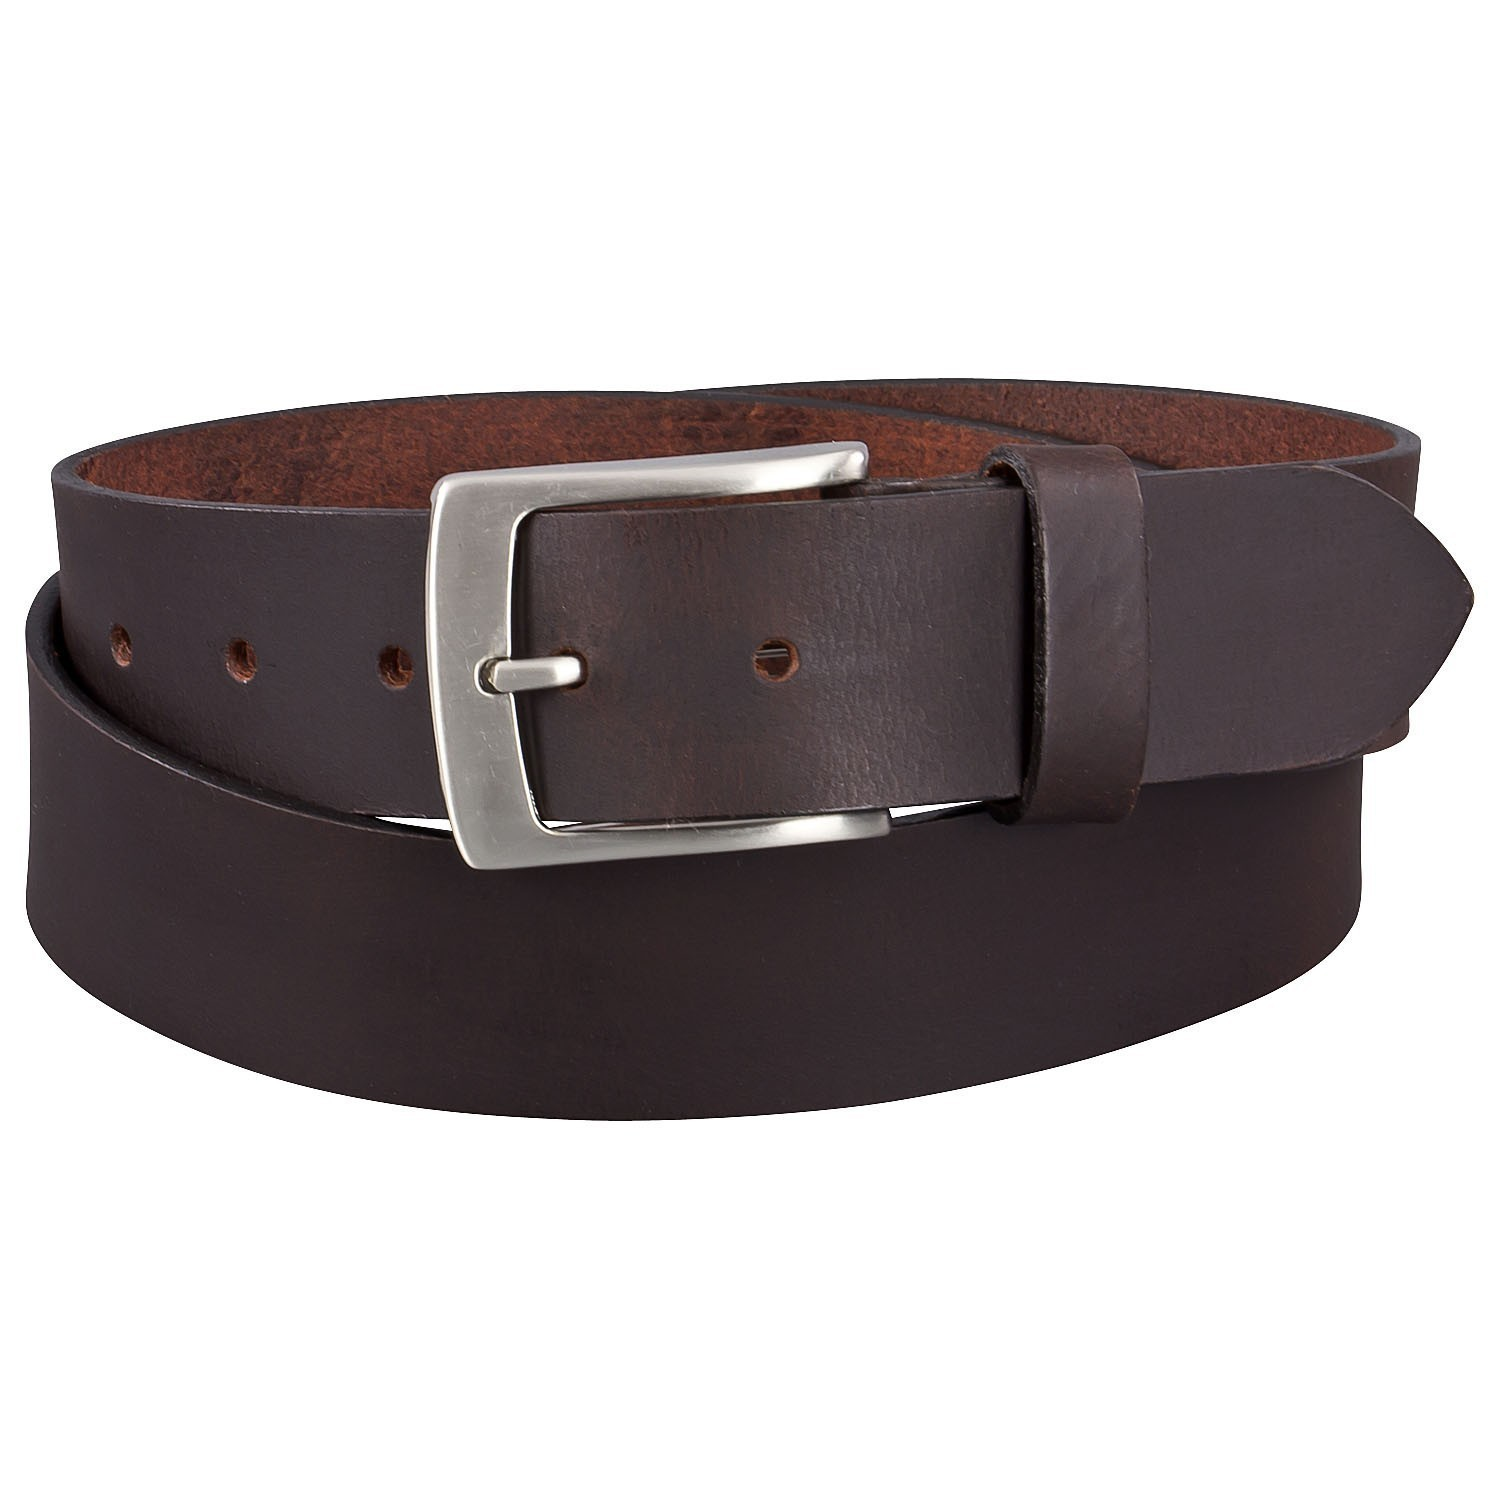 Detail Image to Brown basic jeans belt up to over length 170 cm (66.9 inches) by Lindenmann